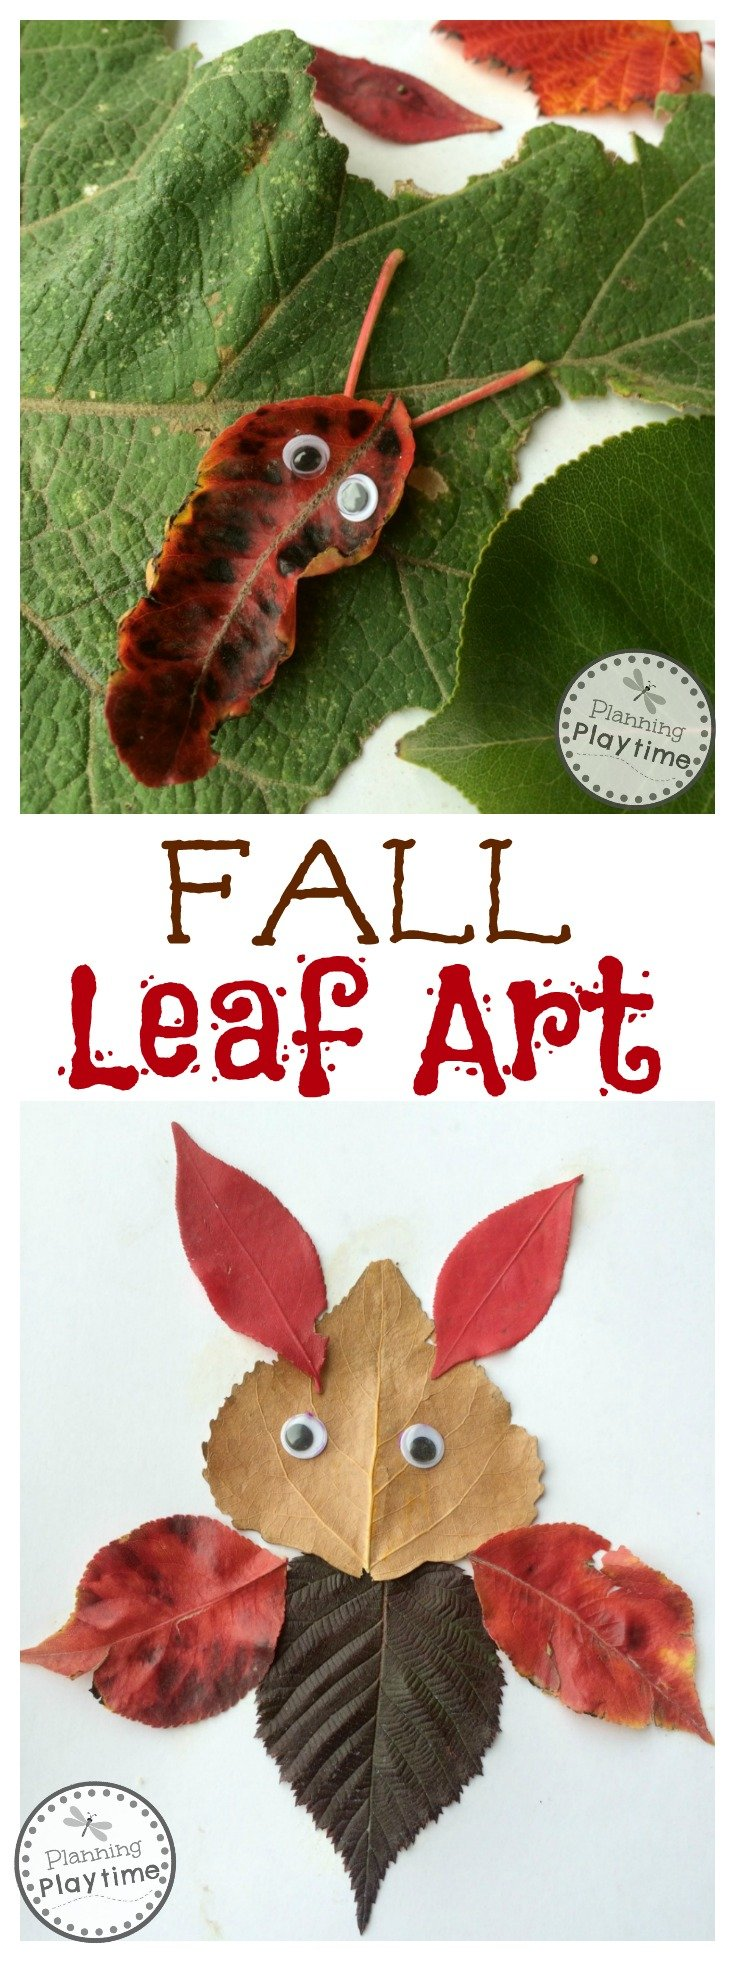 Educational Activities with Fall Leaves - Fall Leaf Art.